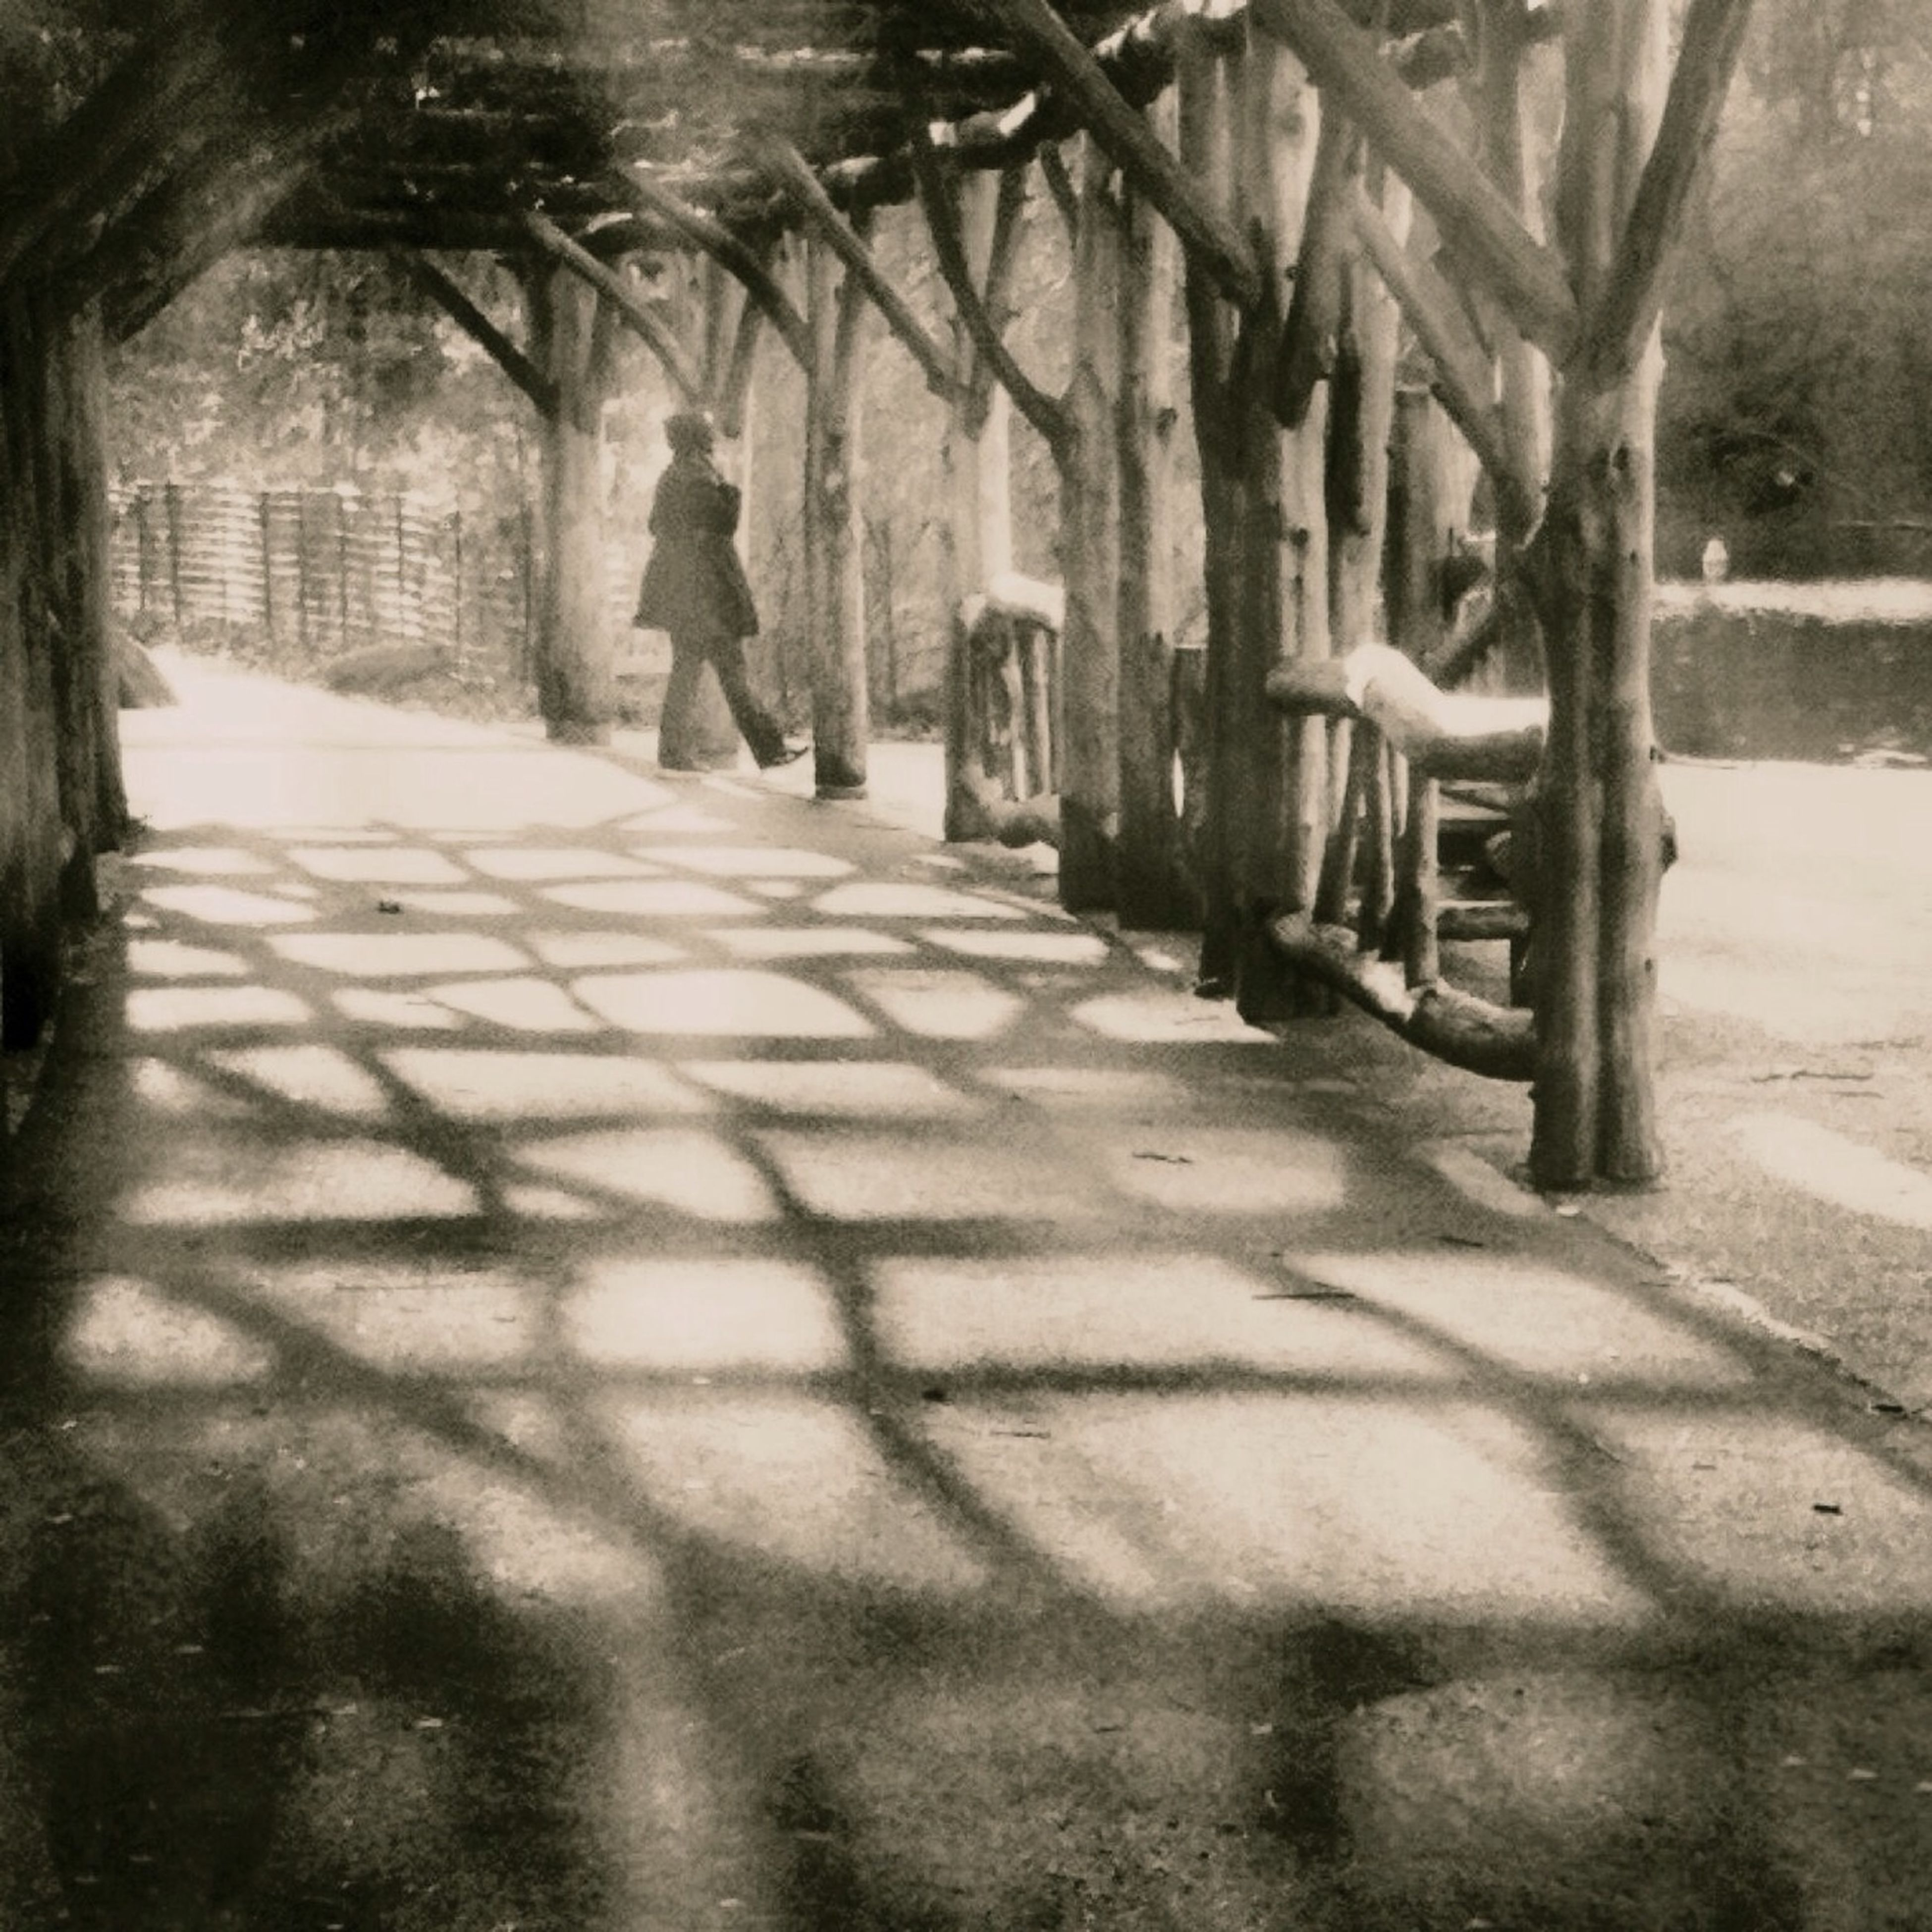 shadow, sunlight, tree, the way forward, footpath, walkway, built structure, street, cobblestone, sidewalk, architecture, day, pathway, outdoors, building exterior, walking, paving stone, park - man made space